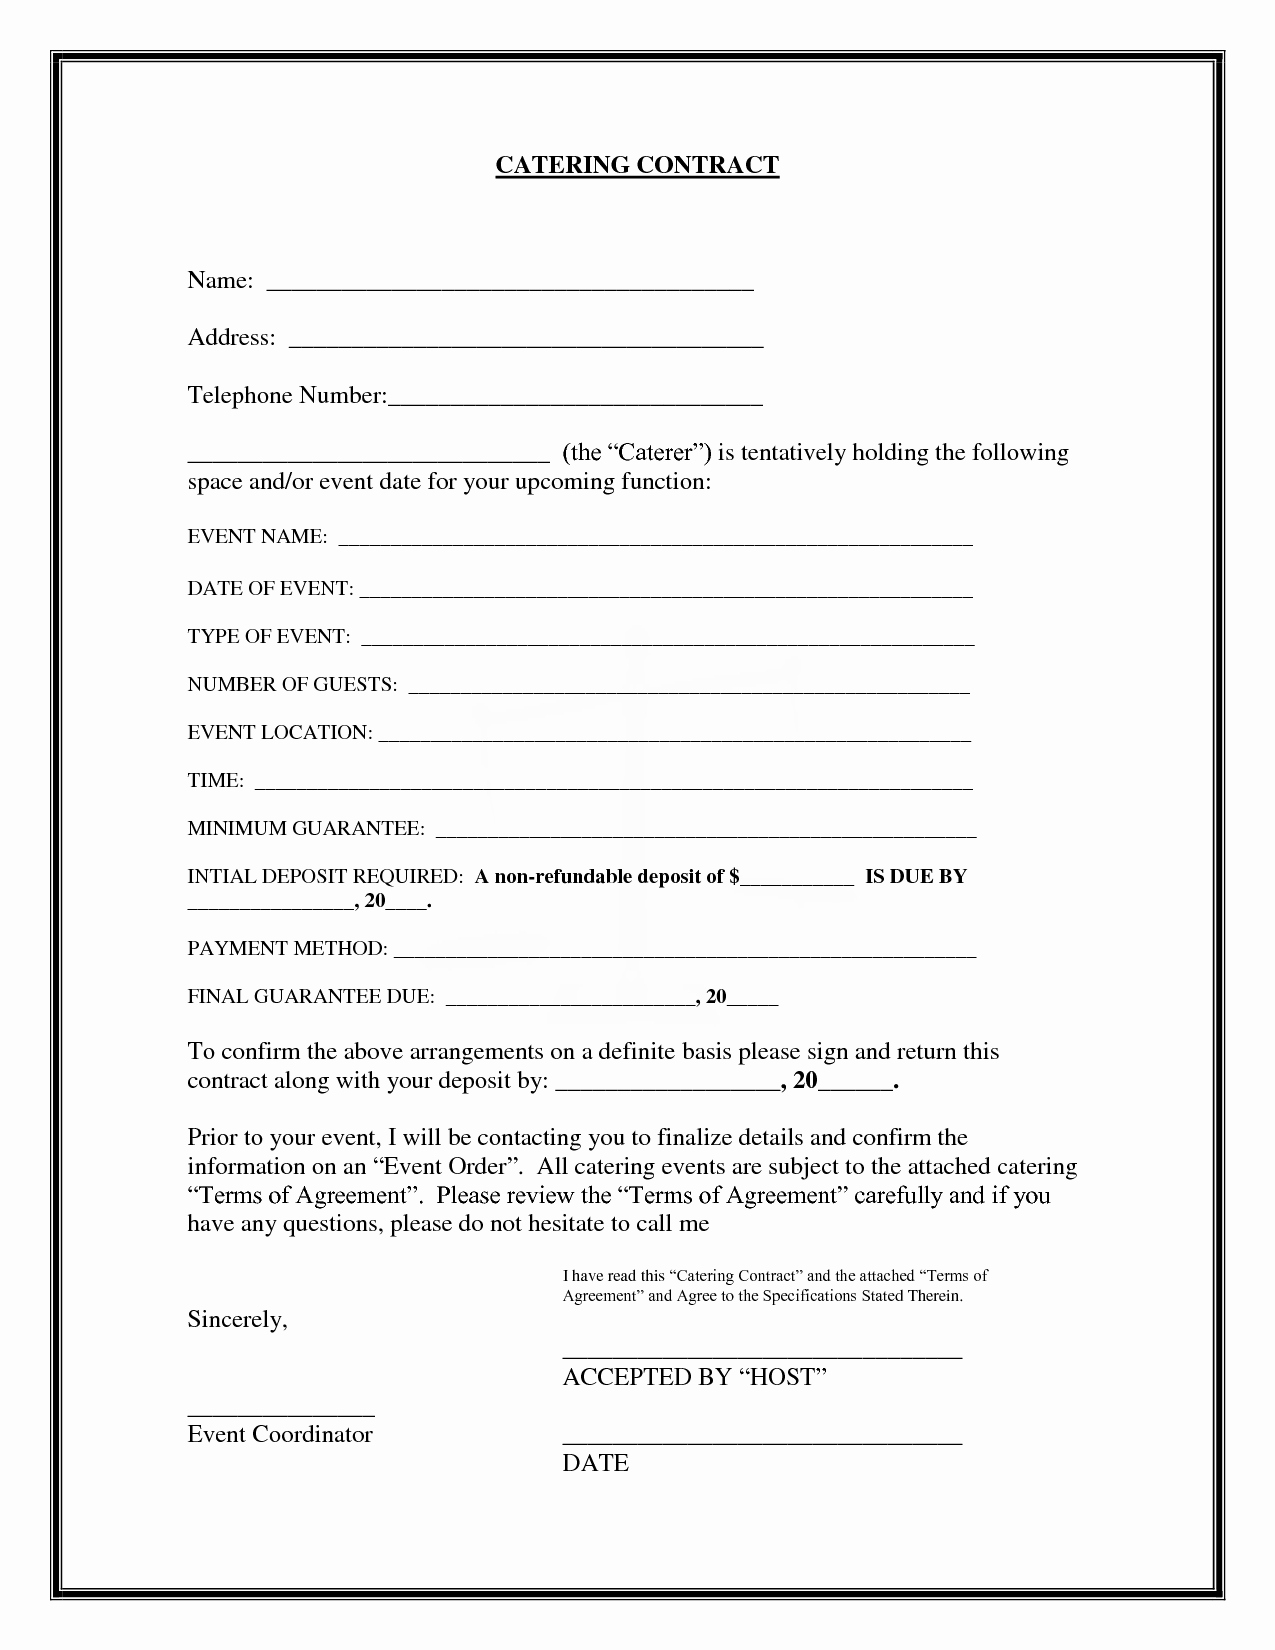 Contract for Catering Services Template Lovely Catering Contract Catering Contract Name